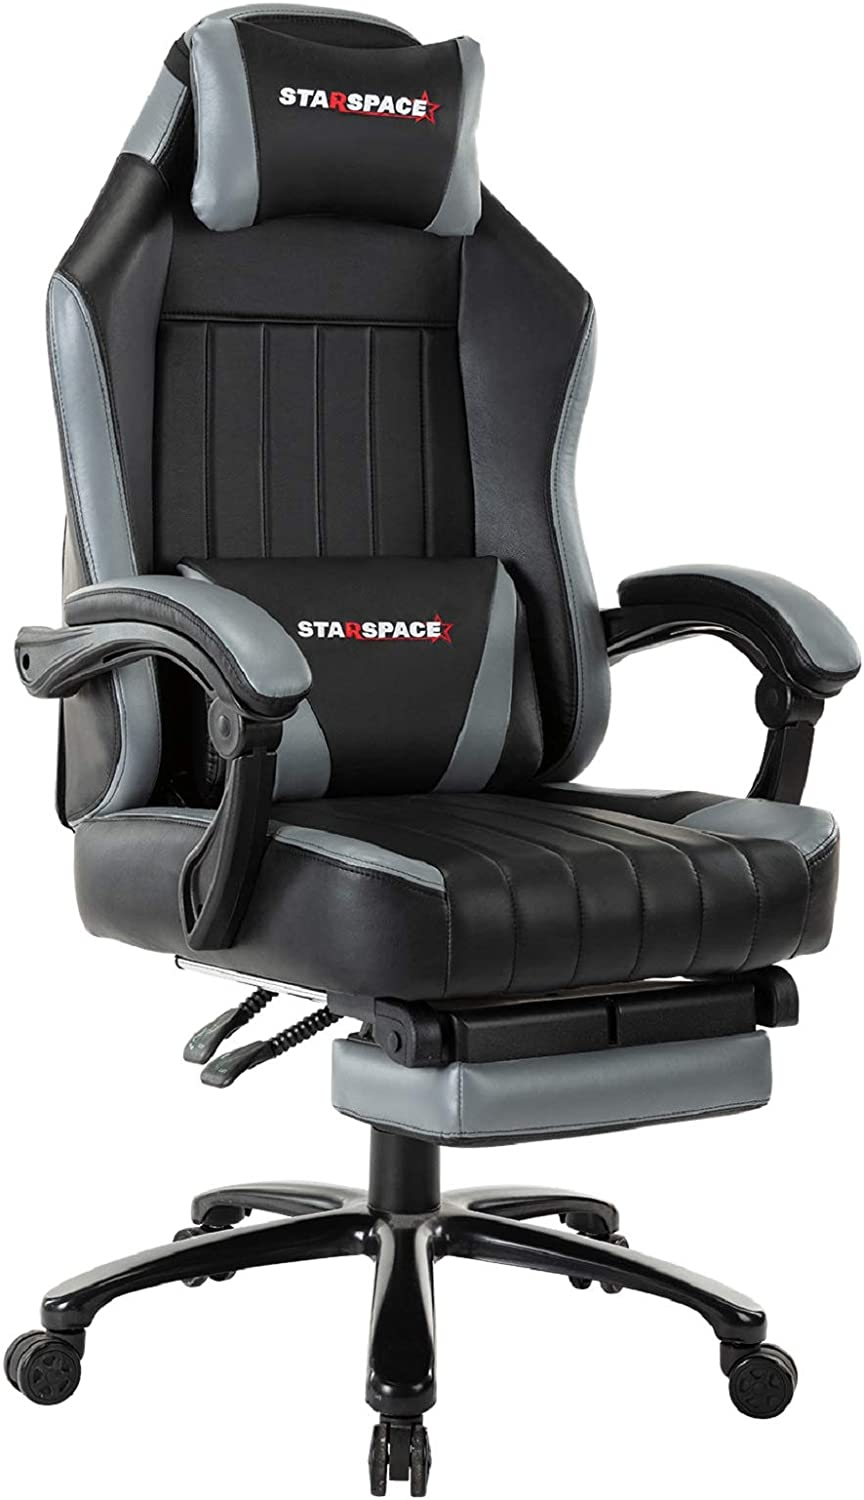 STARSPACE Big & Tall 350lb Gaming Chair Massage- Retractable Footrest Metal Base High Back Reclining Racing Executive Computer Desk Office Chair Adjustable Back Angle (Grey)